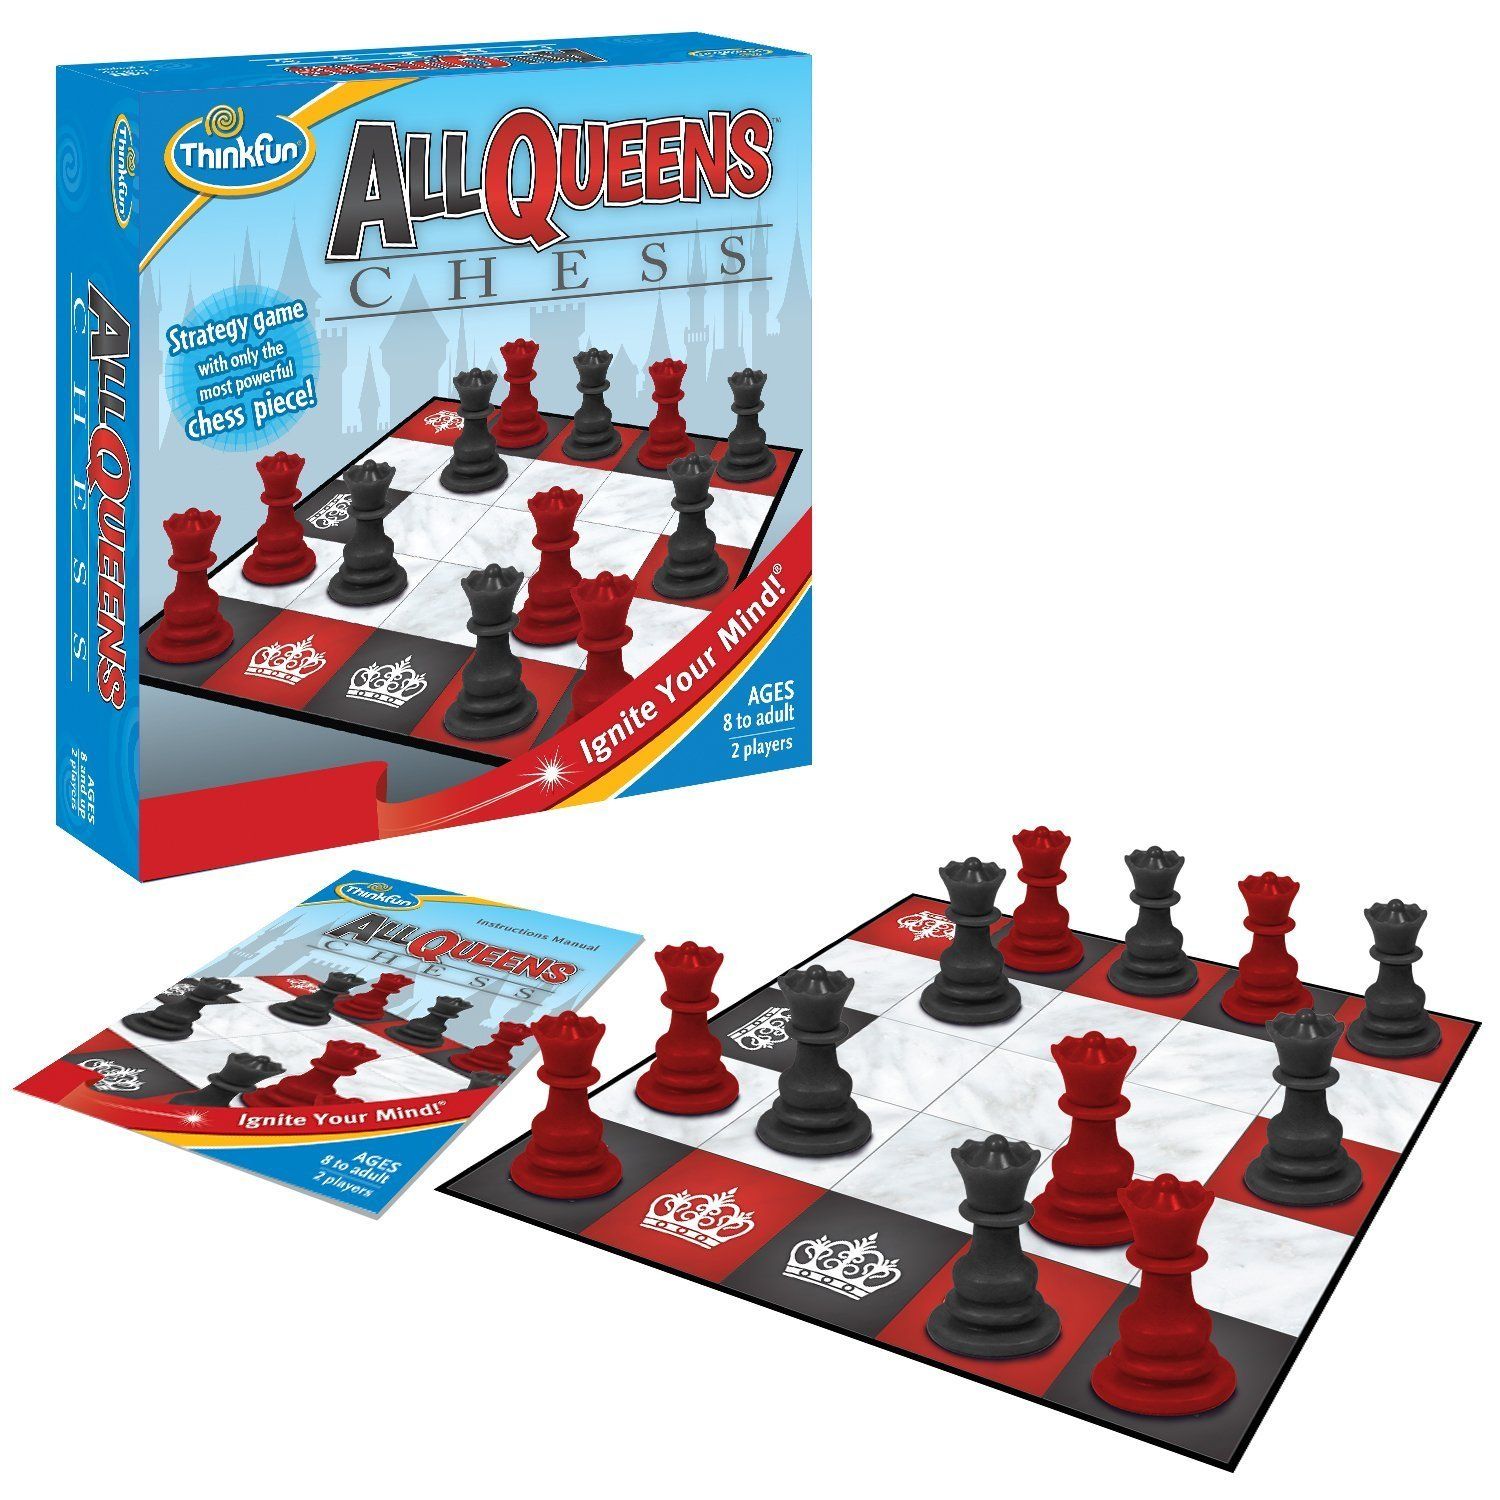 all-queens-chess